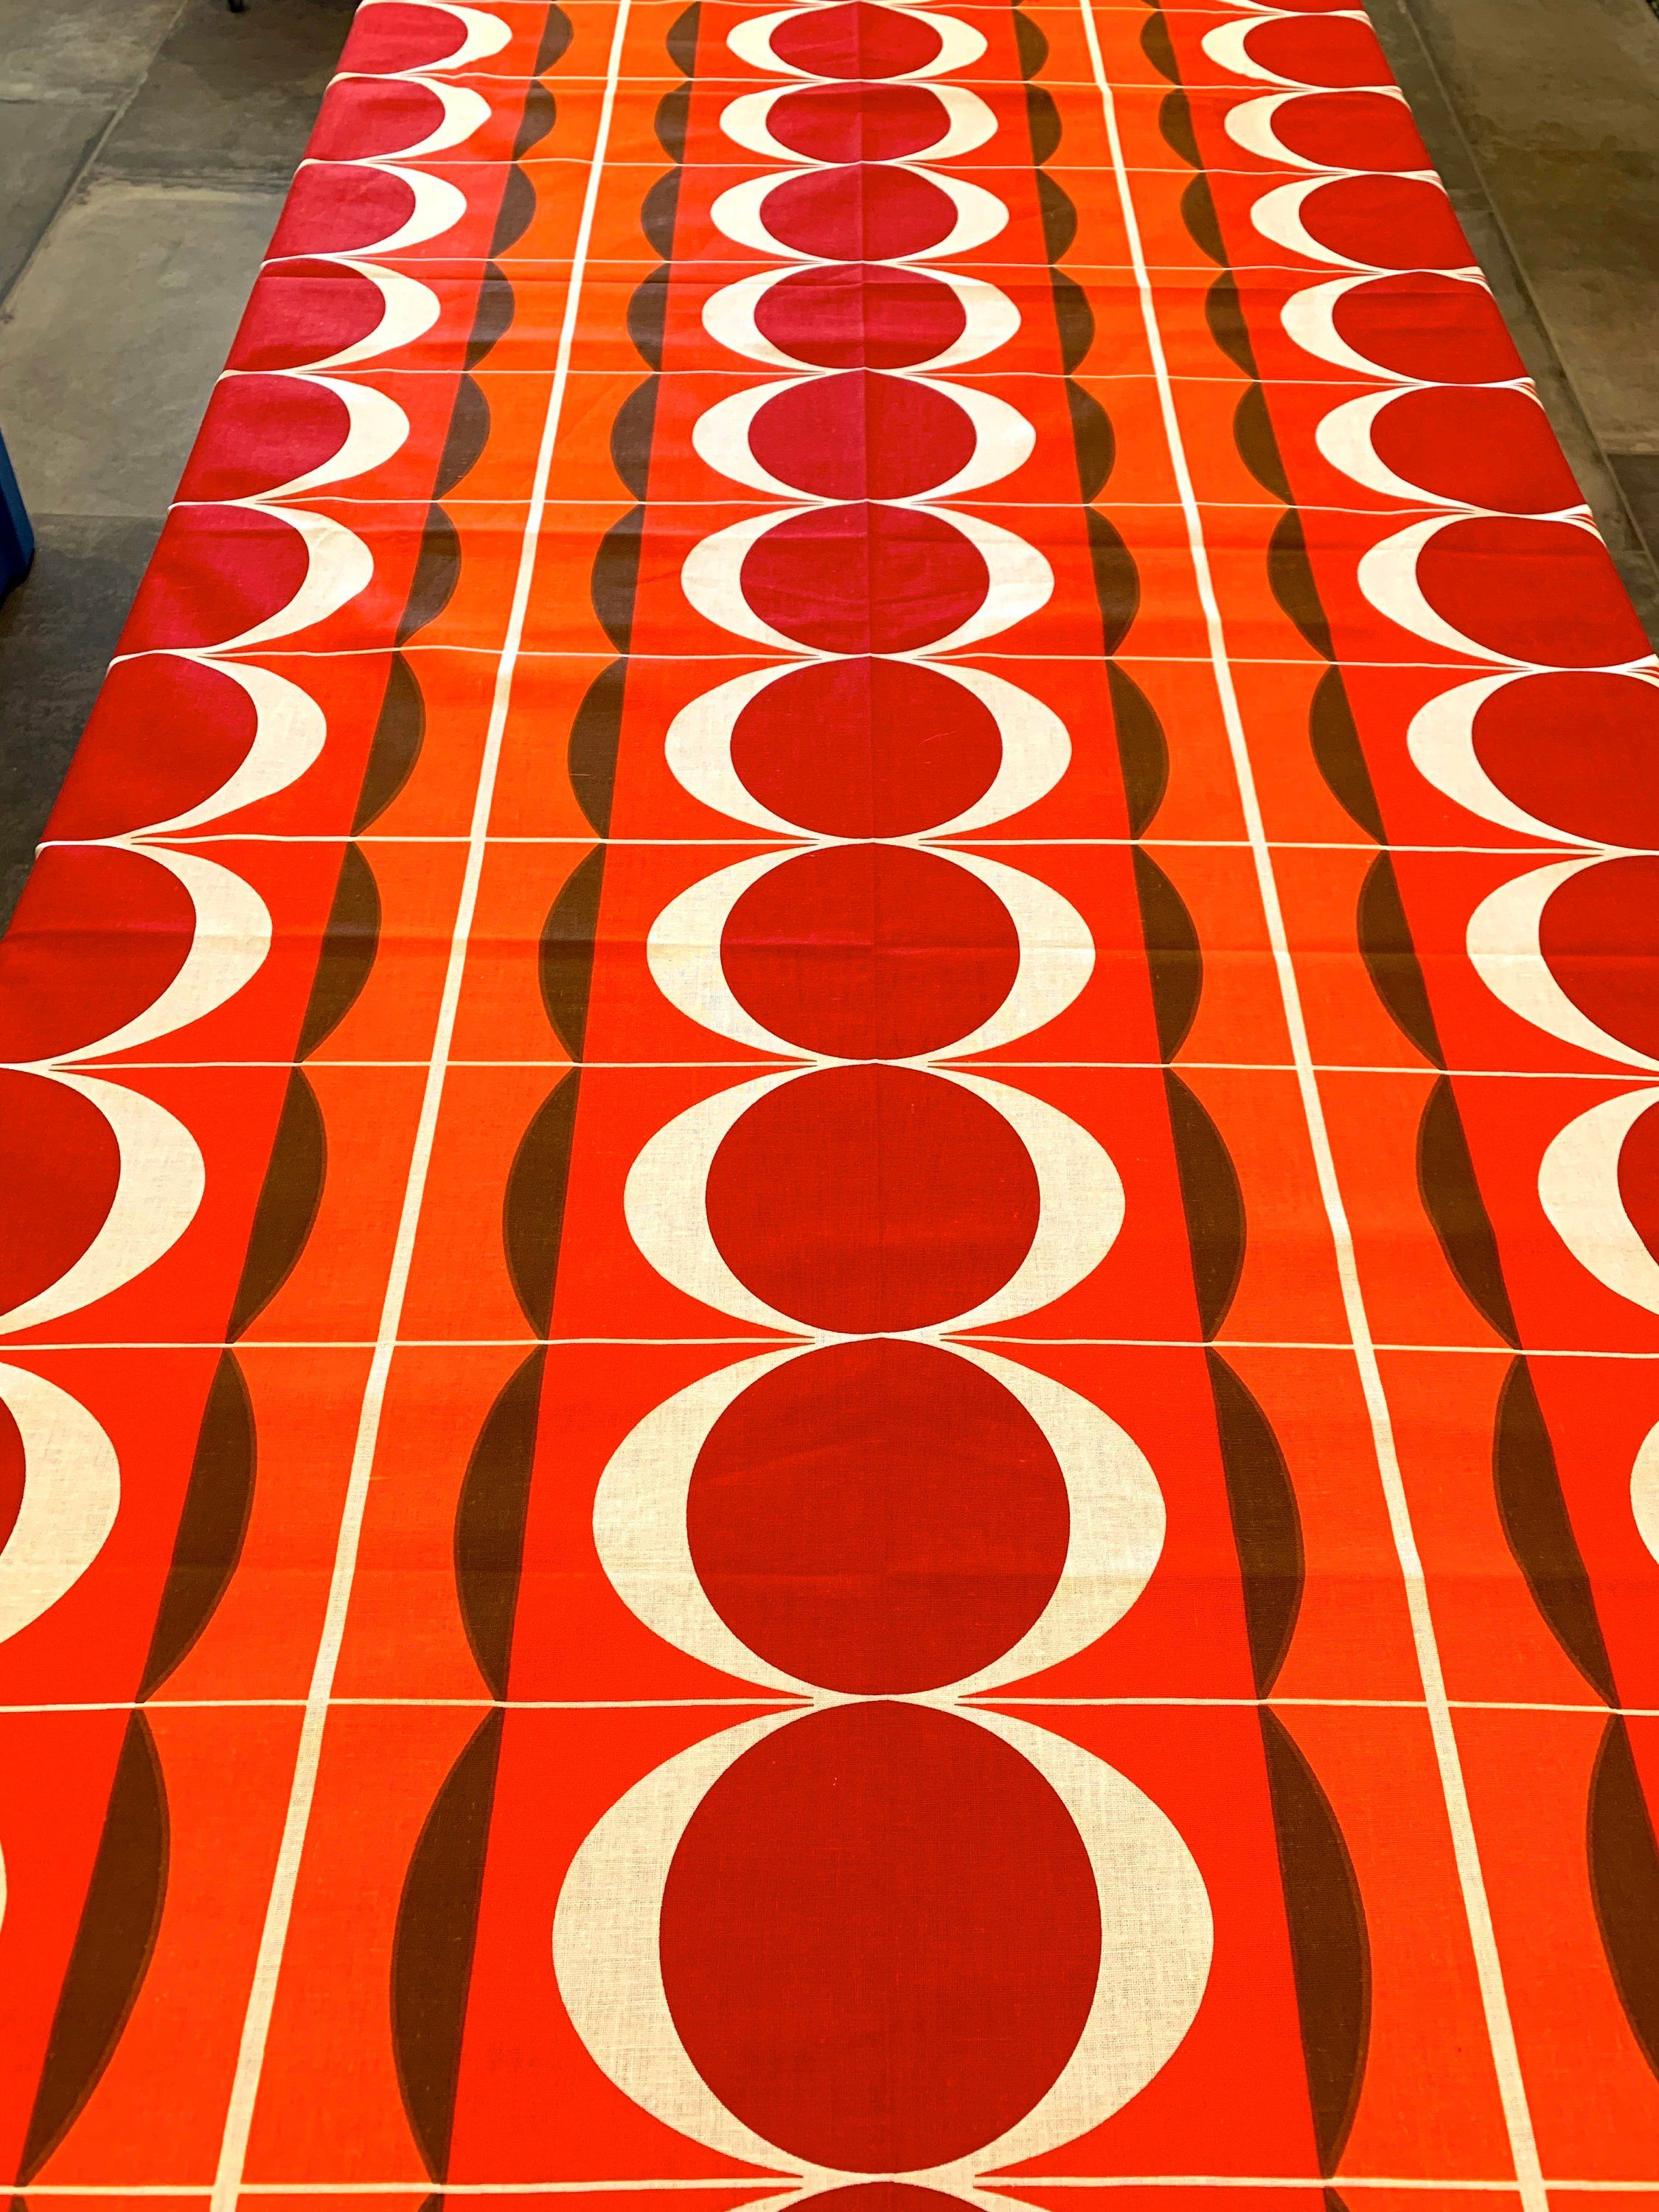 Wild Disco 70s Broadcloth Fabric With An Op Art Flair Etsy Painted Signs Panton Fabric Scandinavian Design